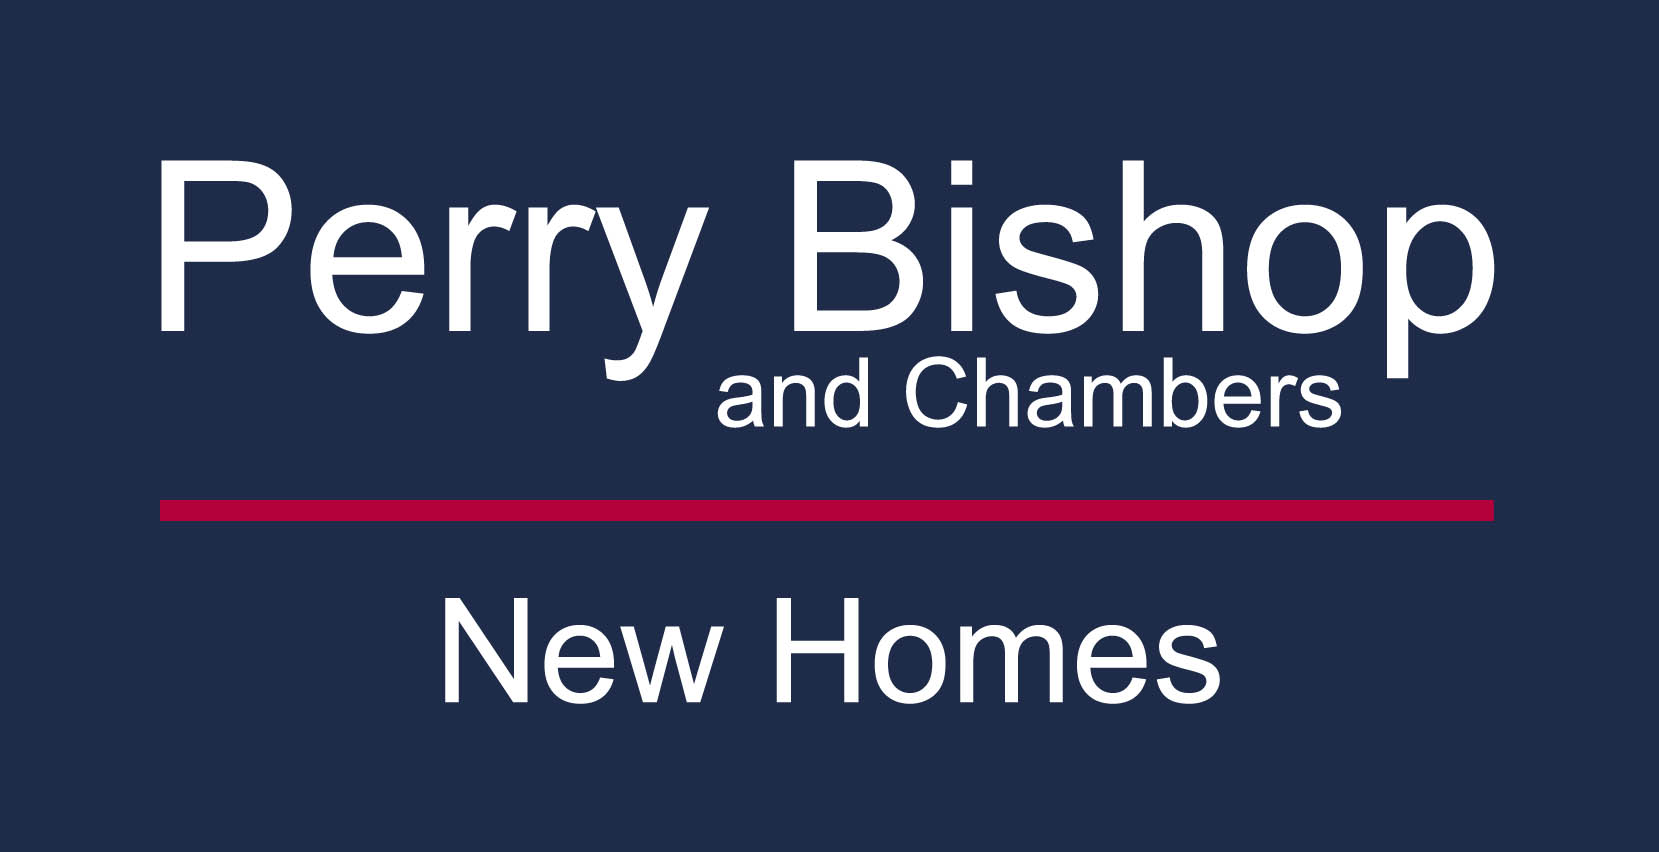 Perry Bishop & Chambers logo